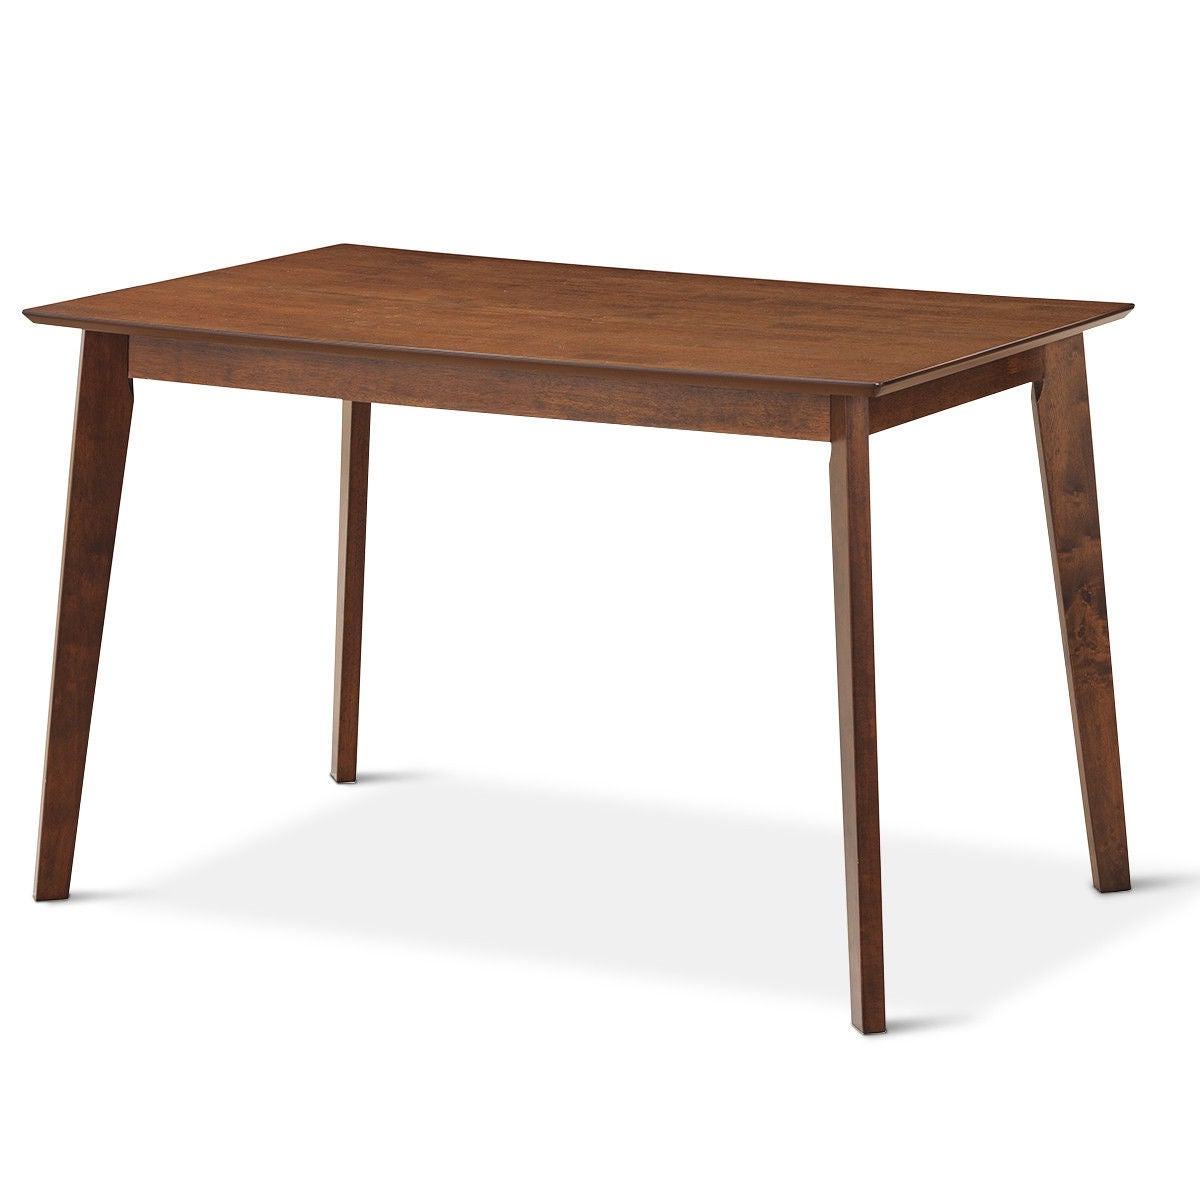 Most Popular Mid Century Rectangular Top Dining Tables With Wood Legs Regarding Gymax Mid Century Modern Dining Table Rectangular Tabletop Dining Room W/  Wood Legs – Walnut (View 21 of 30)